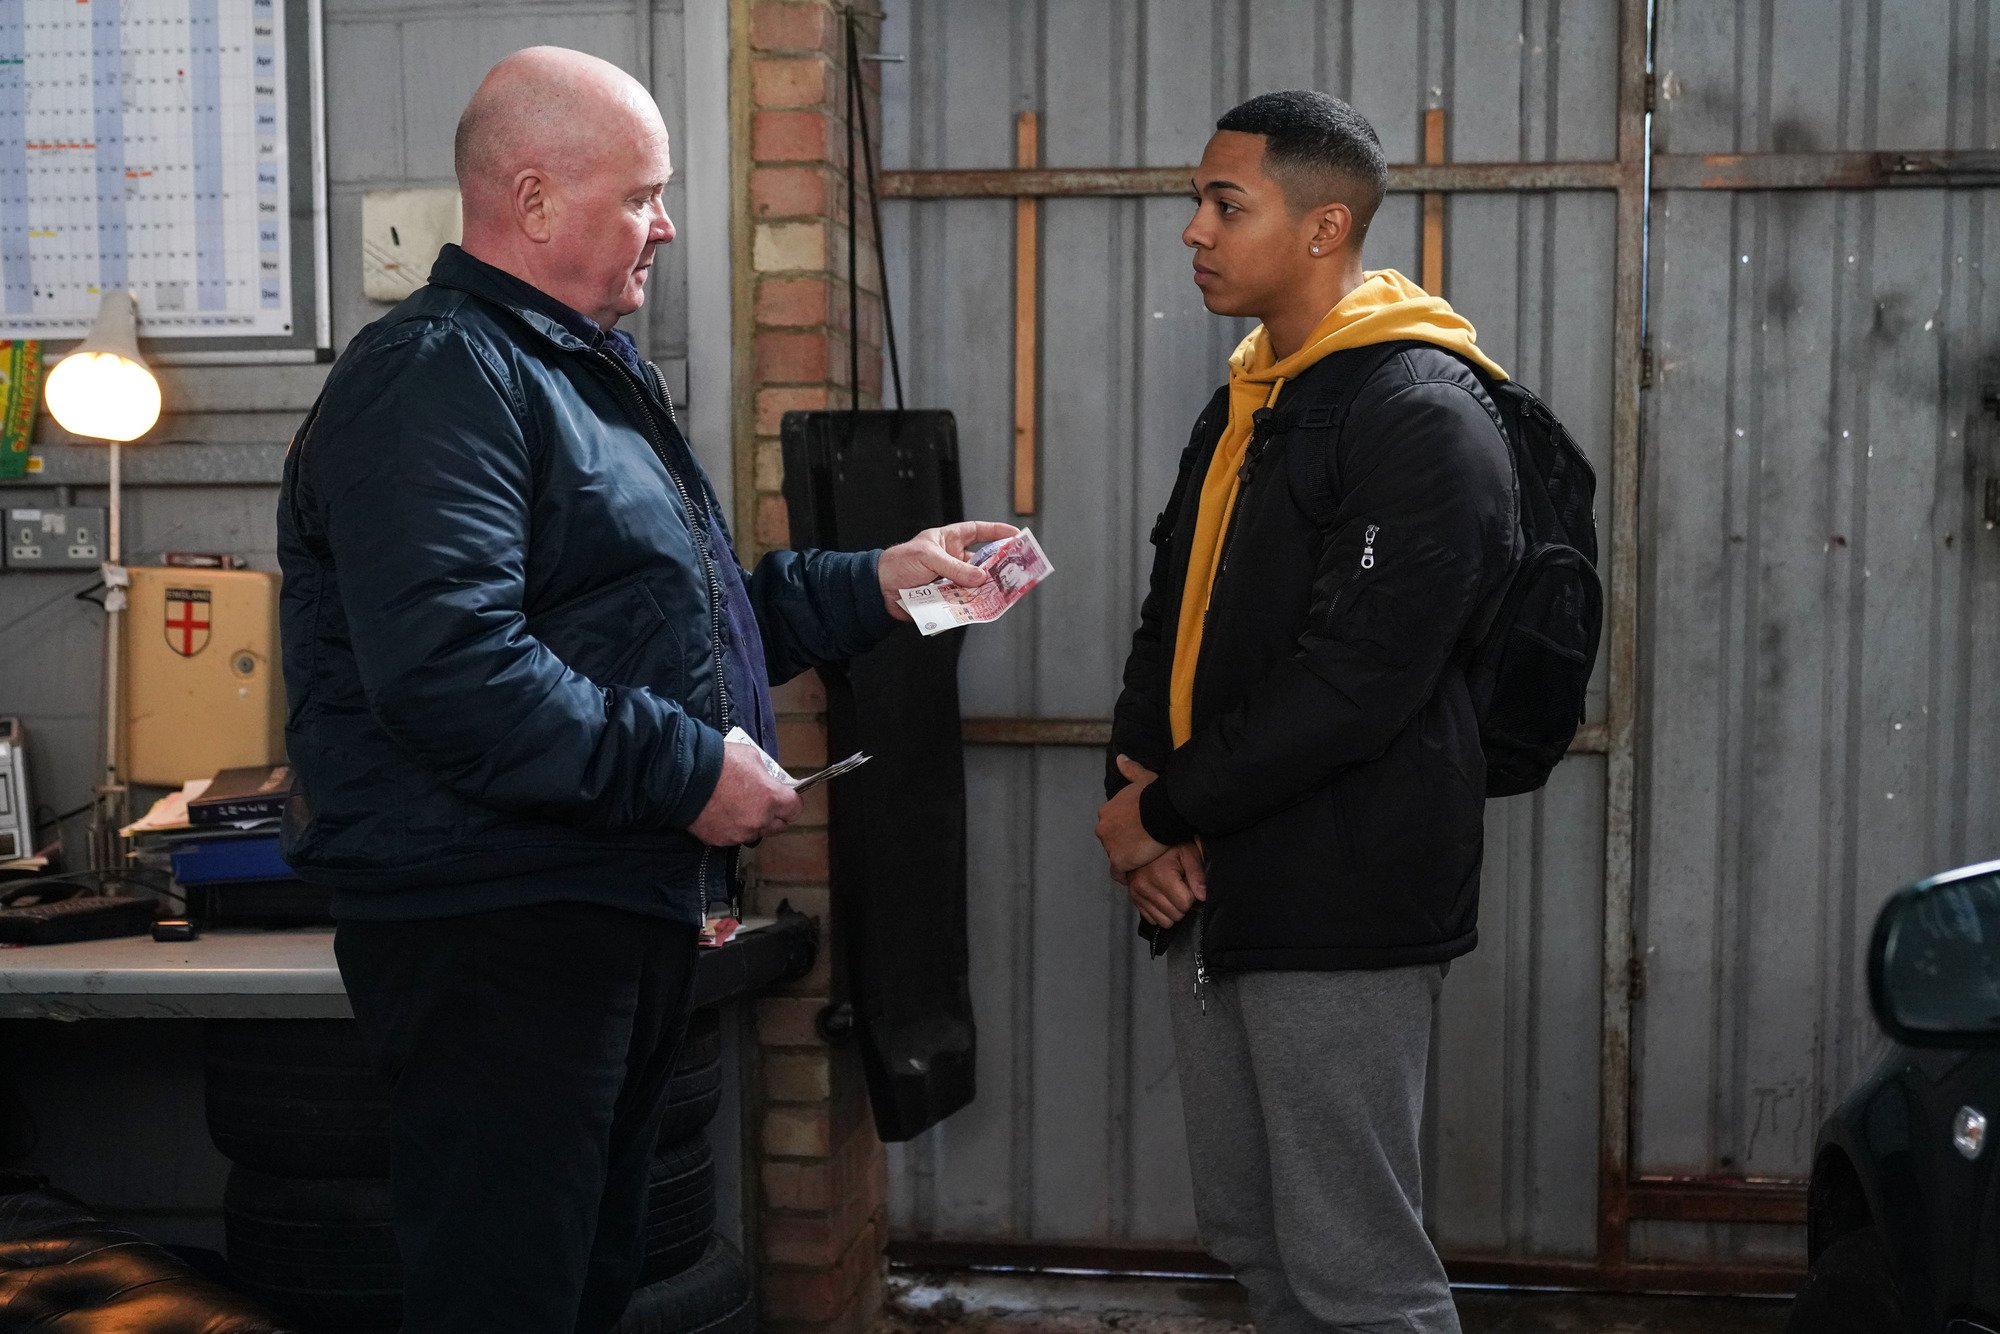 WARNING: Embargoed for publication until 00:00:01 on 15/01/2019 - Programme Name: EastEnders - January - March 2019 - TX: 24/01/2019 - Episode: EastEnders - January - March - 2019 - 5856 (No. n/a) - Picture Shows: *STRICTLY NOT FOR PUBLICATION UNTIL 00:01HRS TUESDAY 15th JANUARY 2019* Keegan strikes a deal with Phil Phil Mitchell (STEVE MCFADDEN), Keegan Baker (ZACK MORRIS) - (C) BBC - Photographer: Kieron McCarron